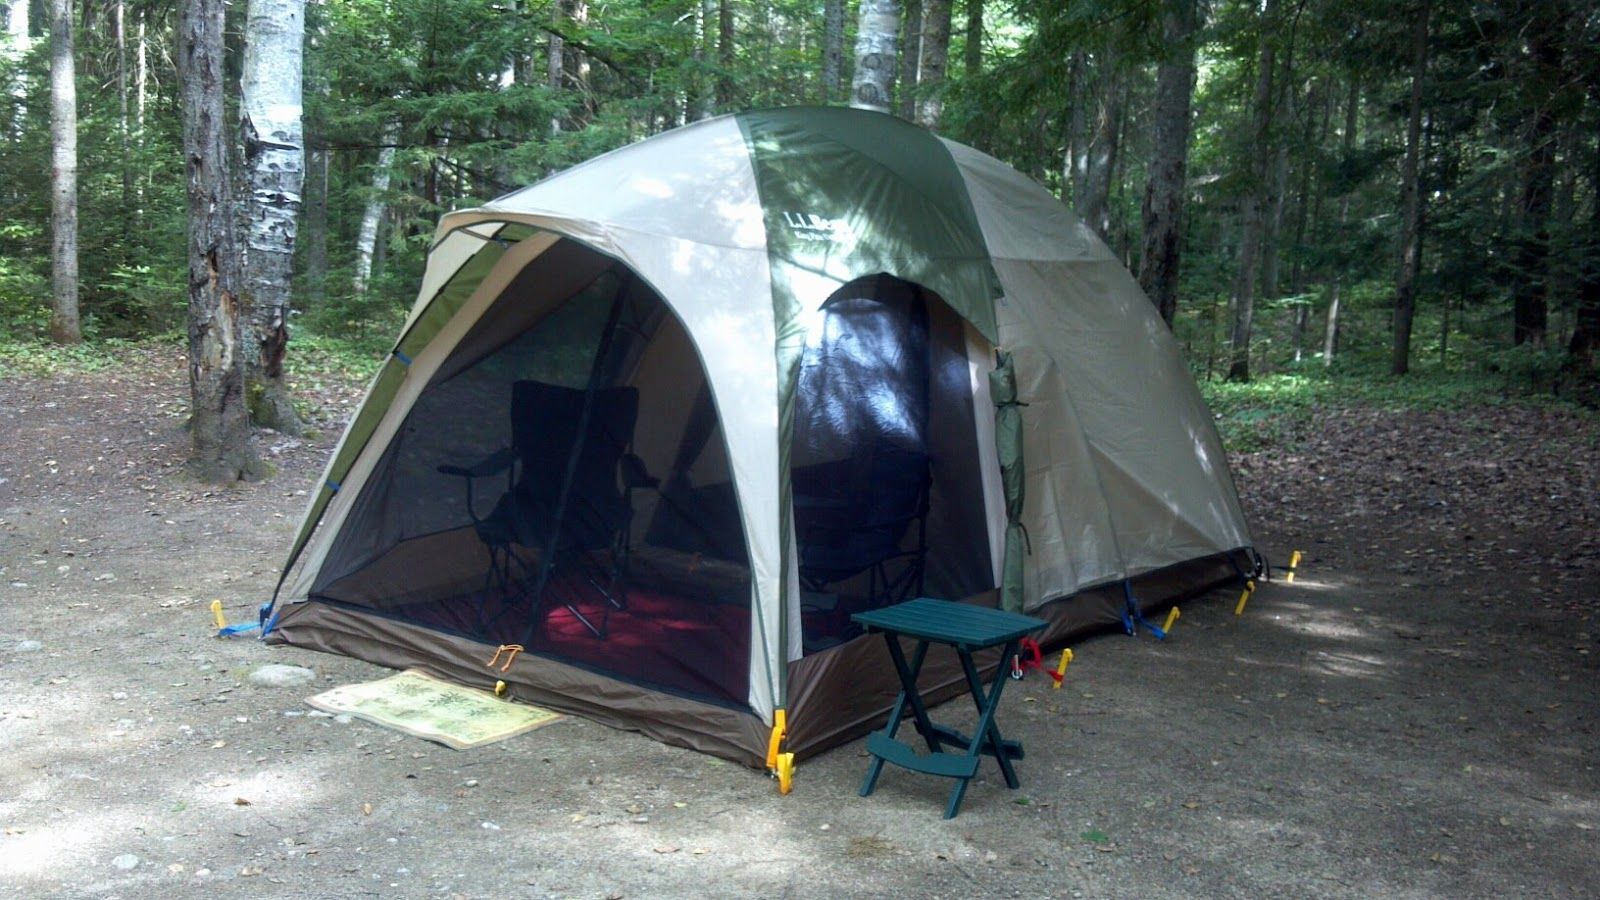 We set up the new LL Bean King Pine tent (which we really love) and got settled in for the evening. Nobody else in our group was arriving before Friday so ... & Ramblings: Imp Face - Seek the Peak Warm-up